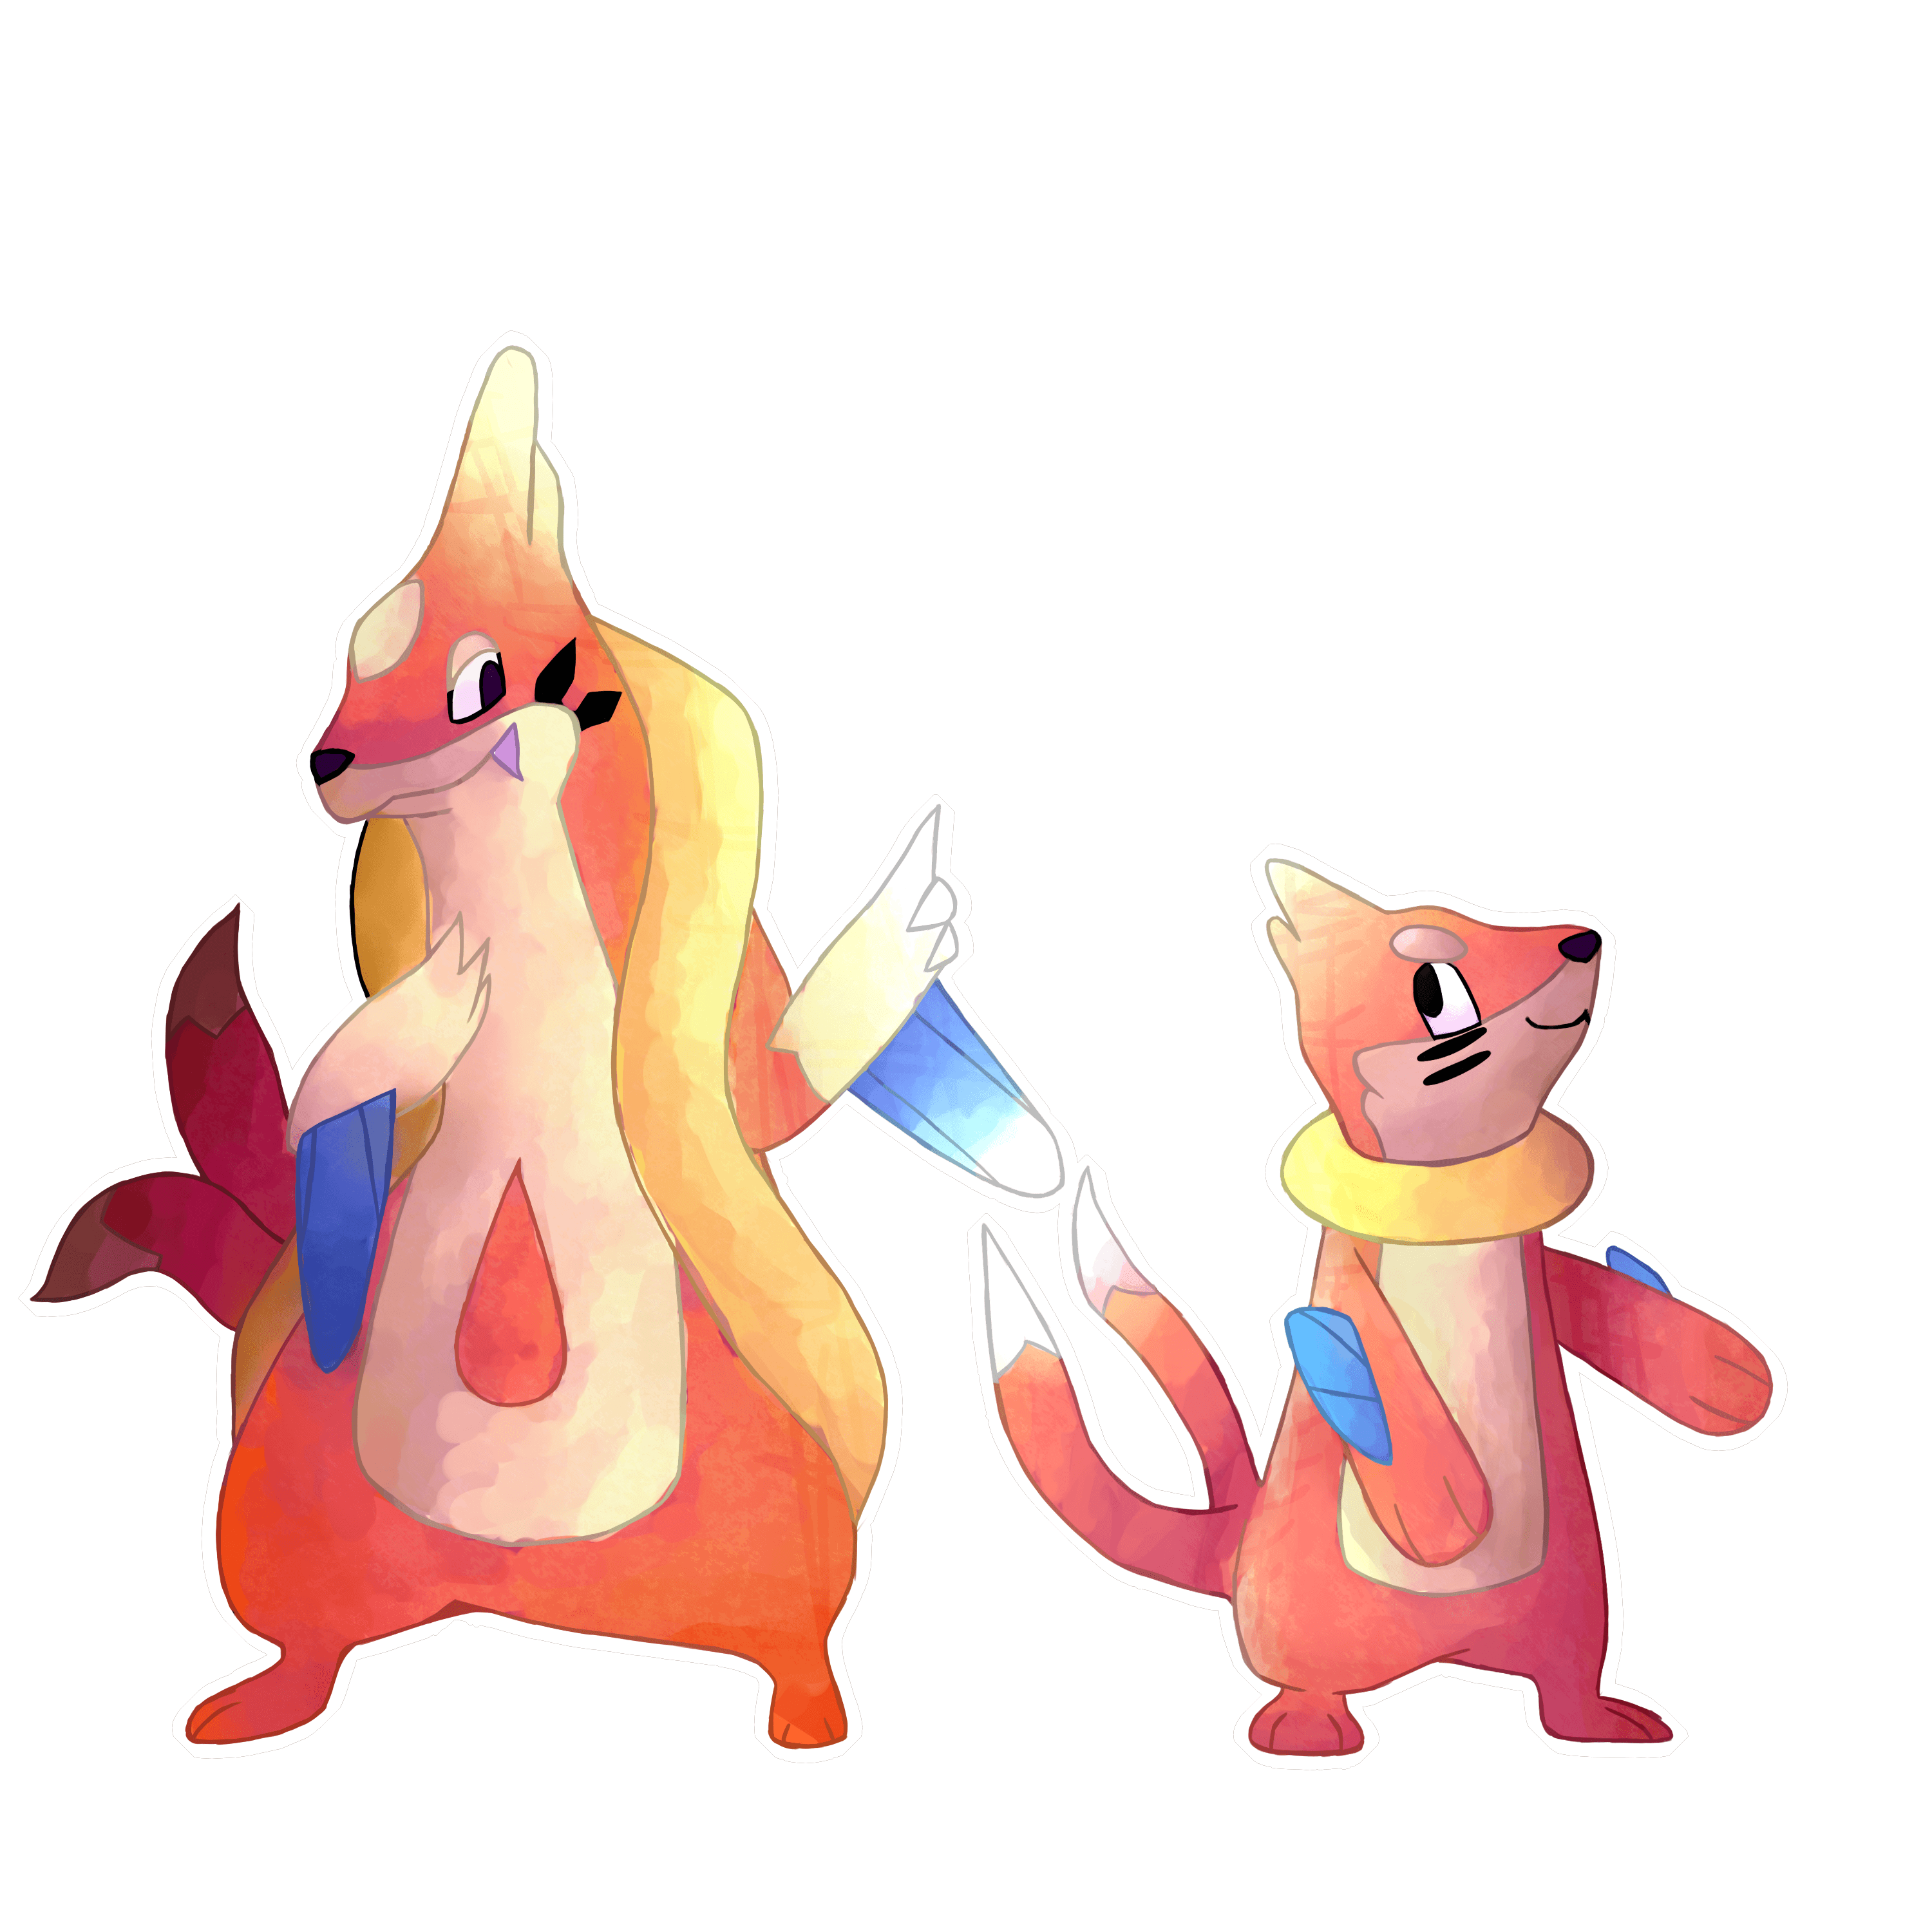 I drew Floatzel and Buizel | Pokemon | Pinterest | Pokémon, Pokemon ...